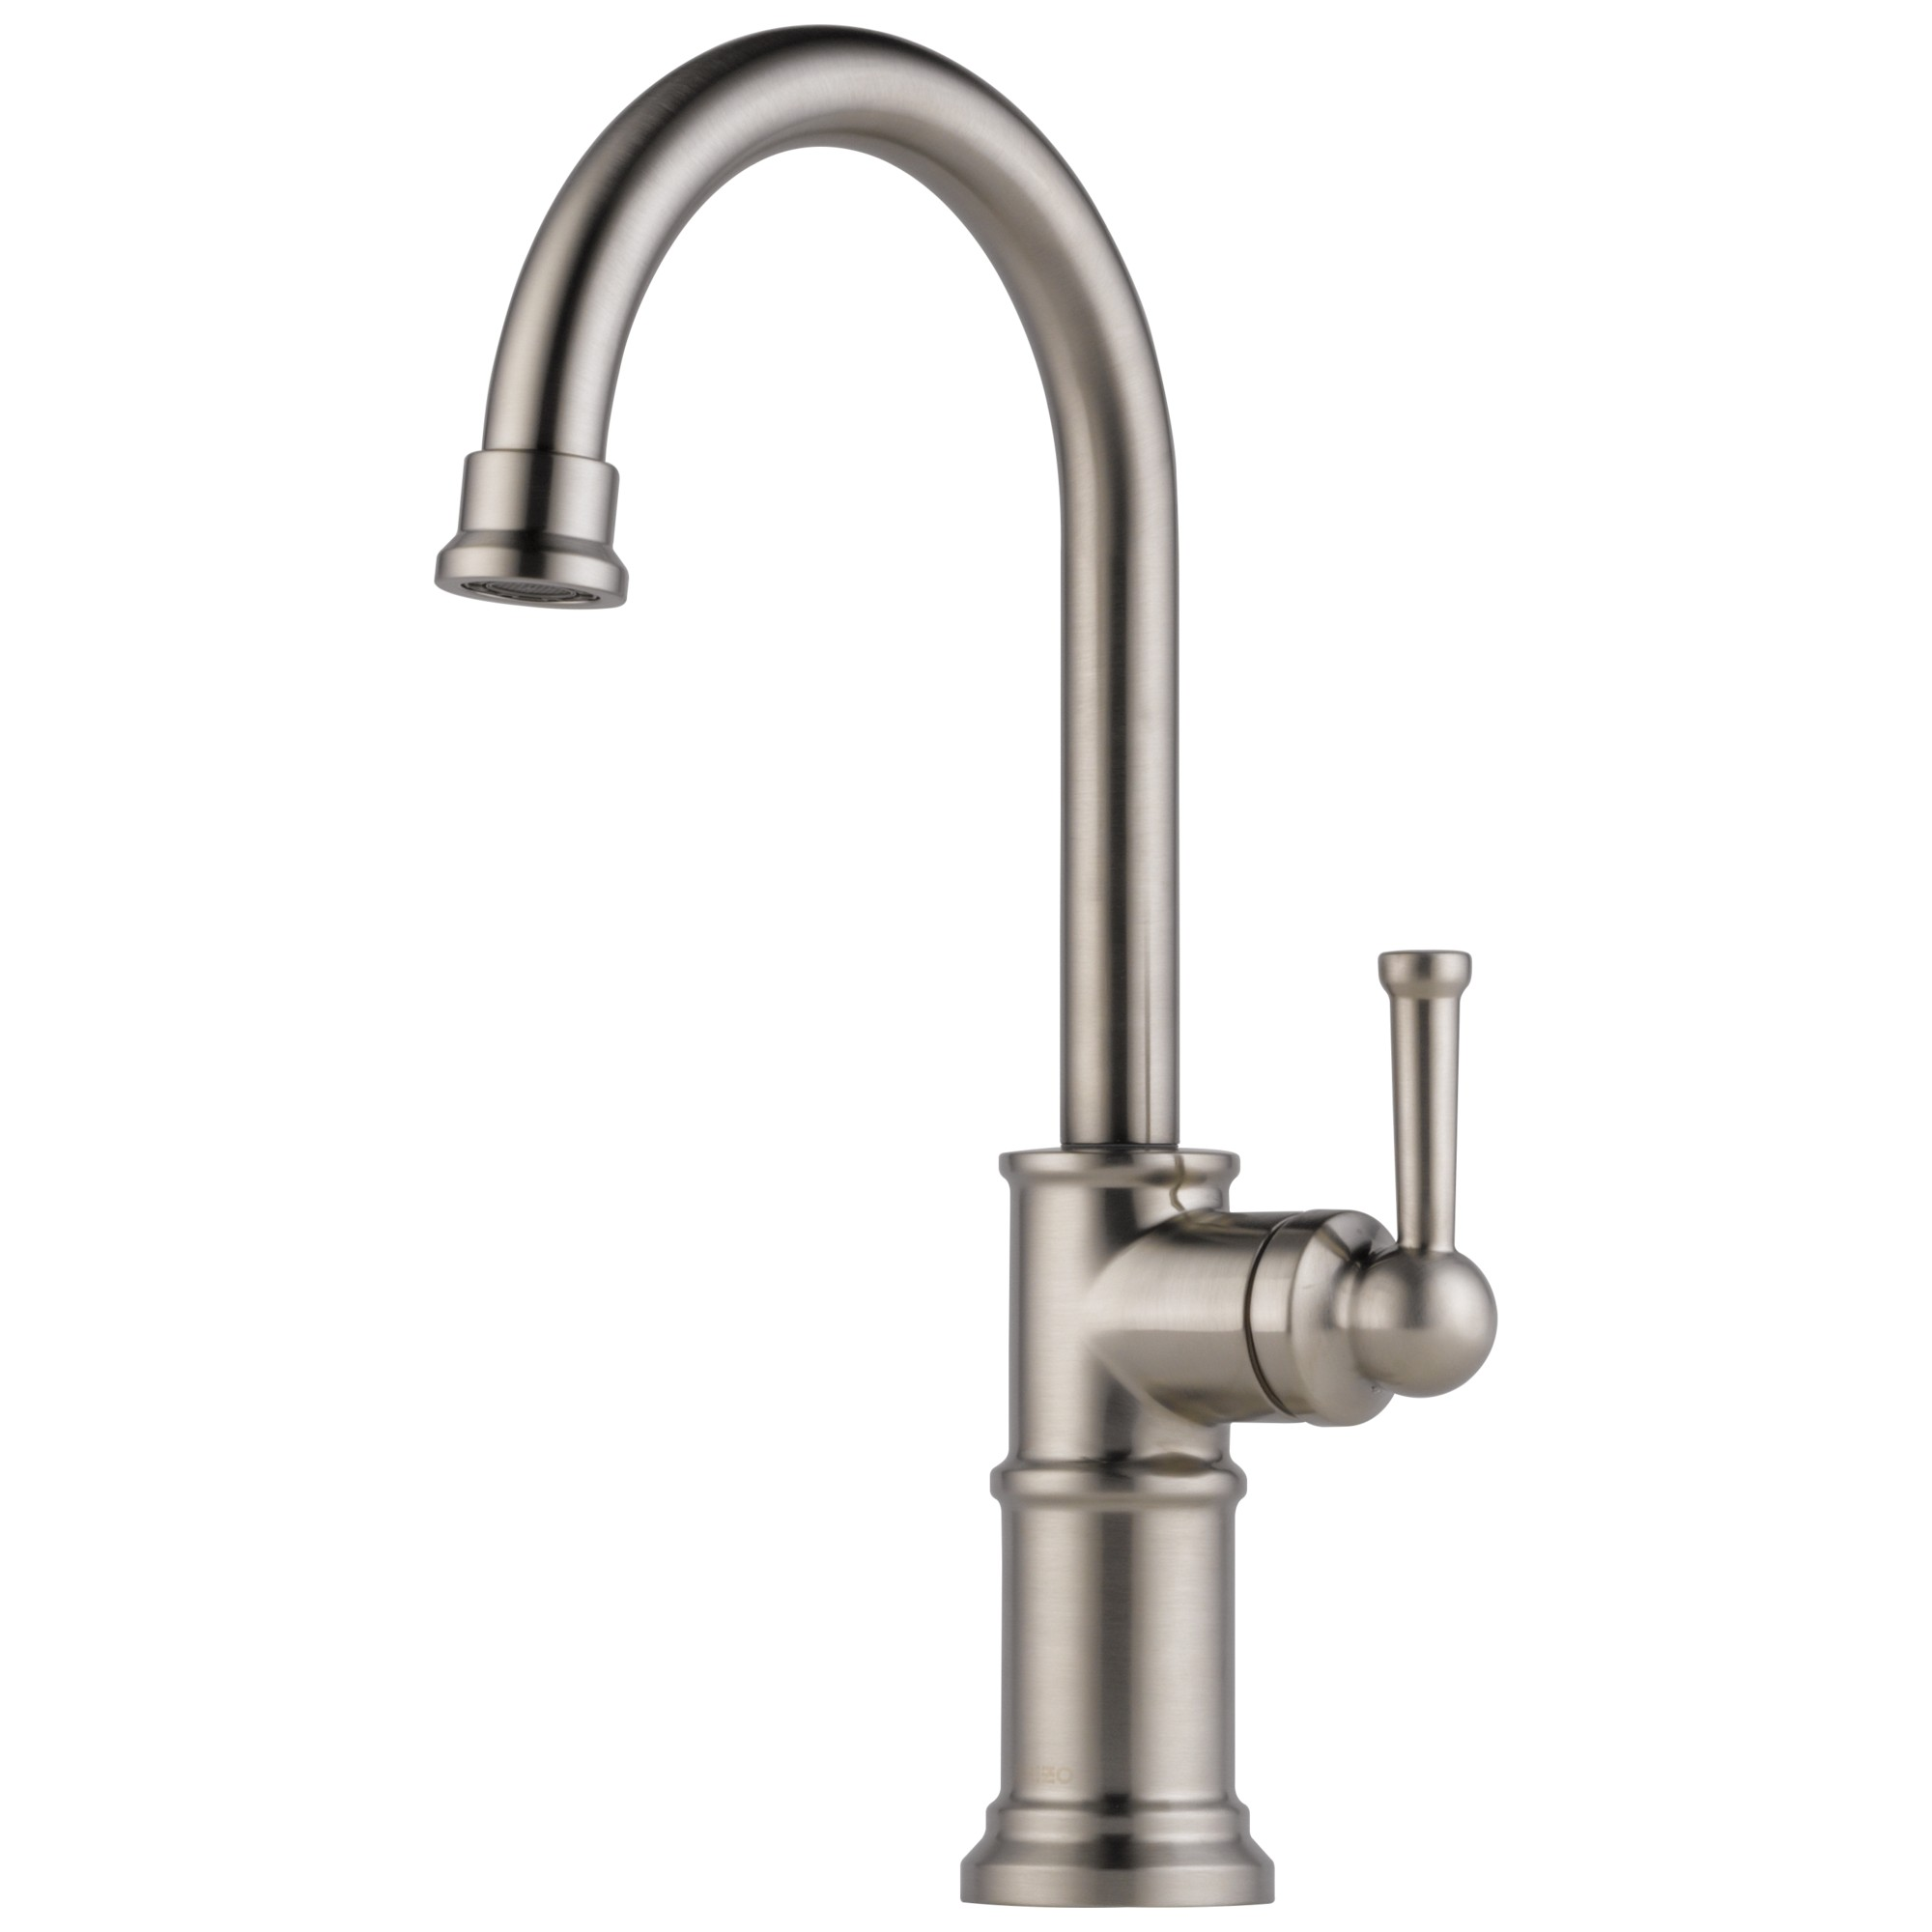 Brizo 61025LF-SS Artesso Single Handle Bar Faucet - Stainless